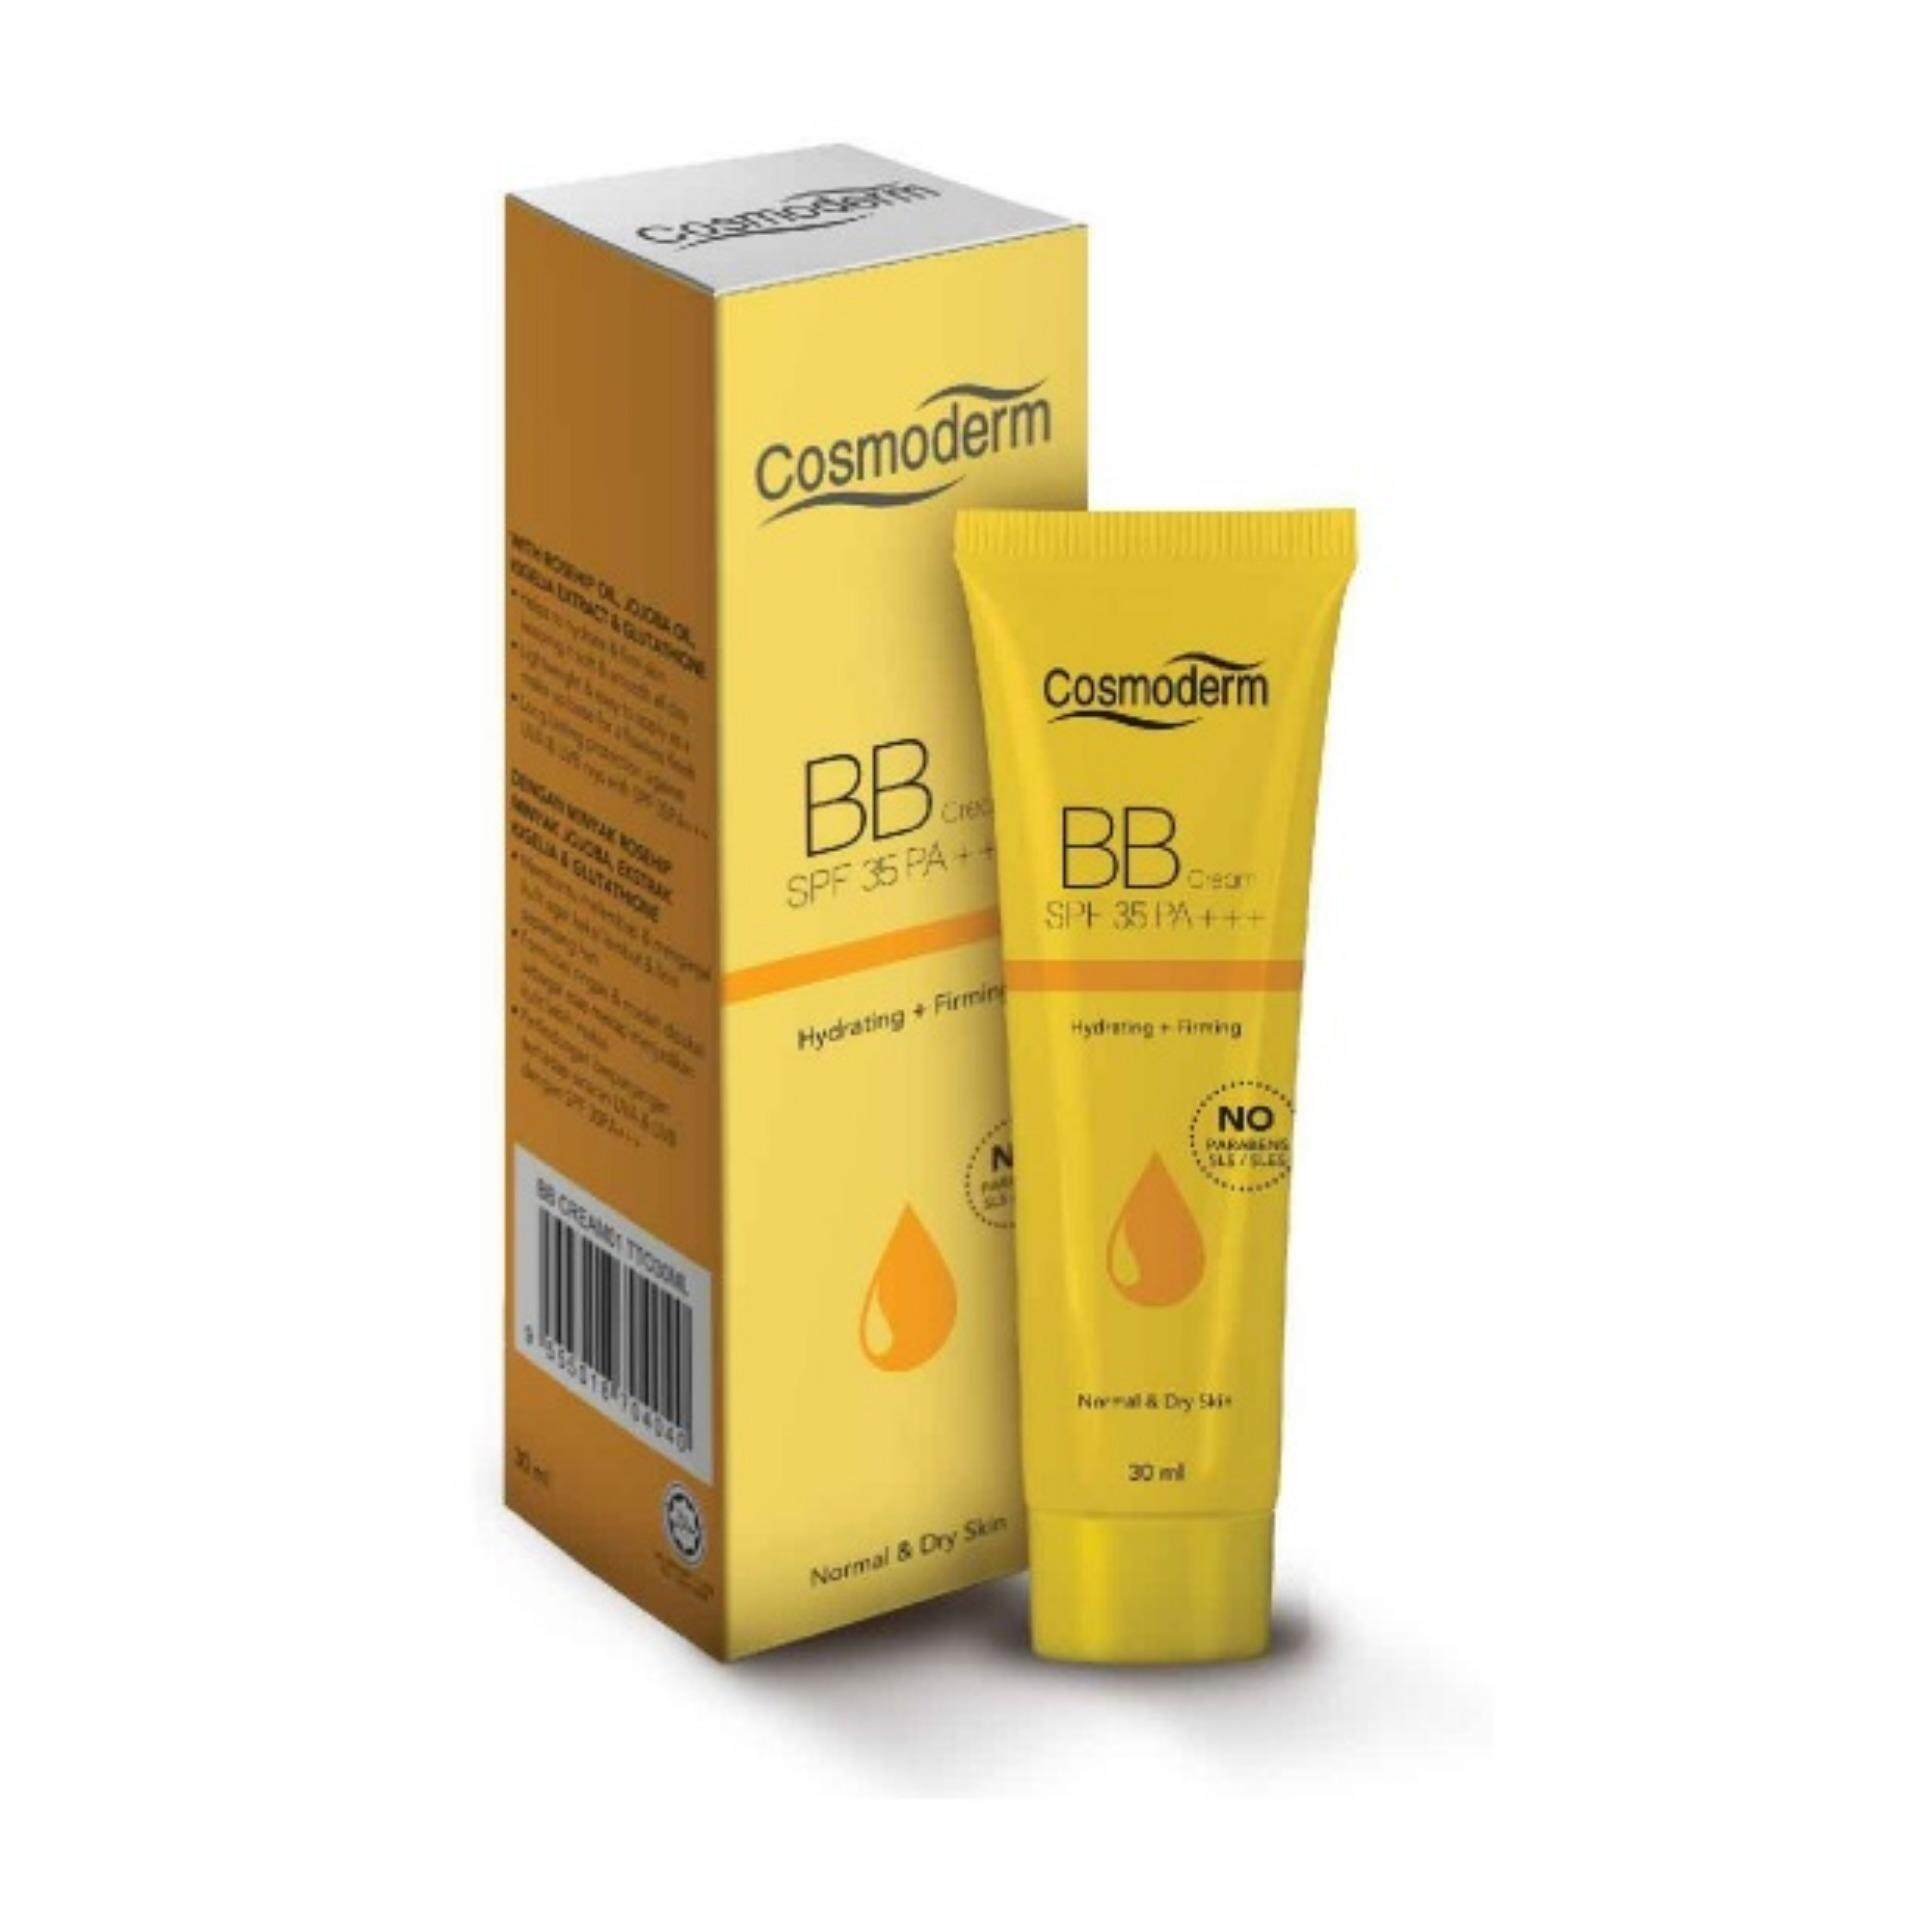 Cosmoderm Face Makeup Bb Cc Cream Price In Malaysia Best Original Spf 35 Pa With Vitamin E Natural Beige 03